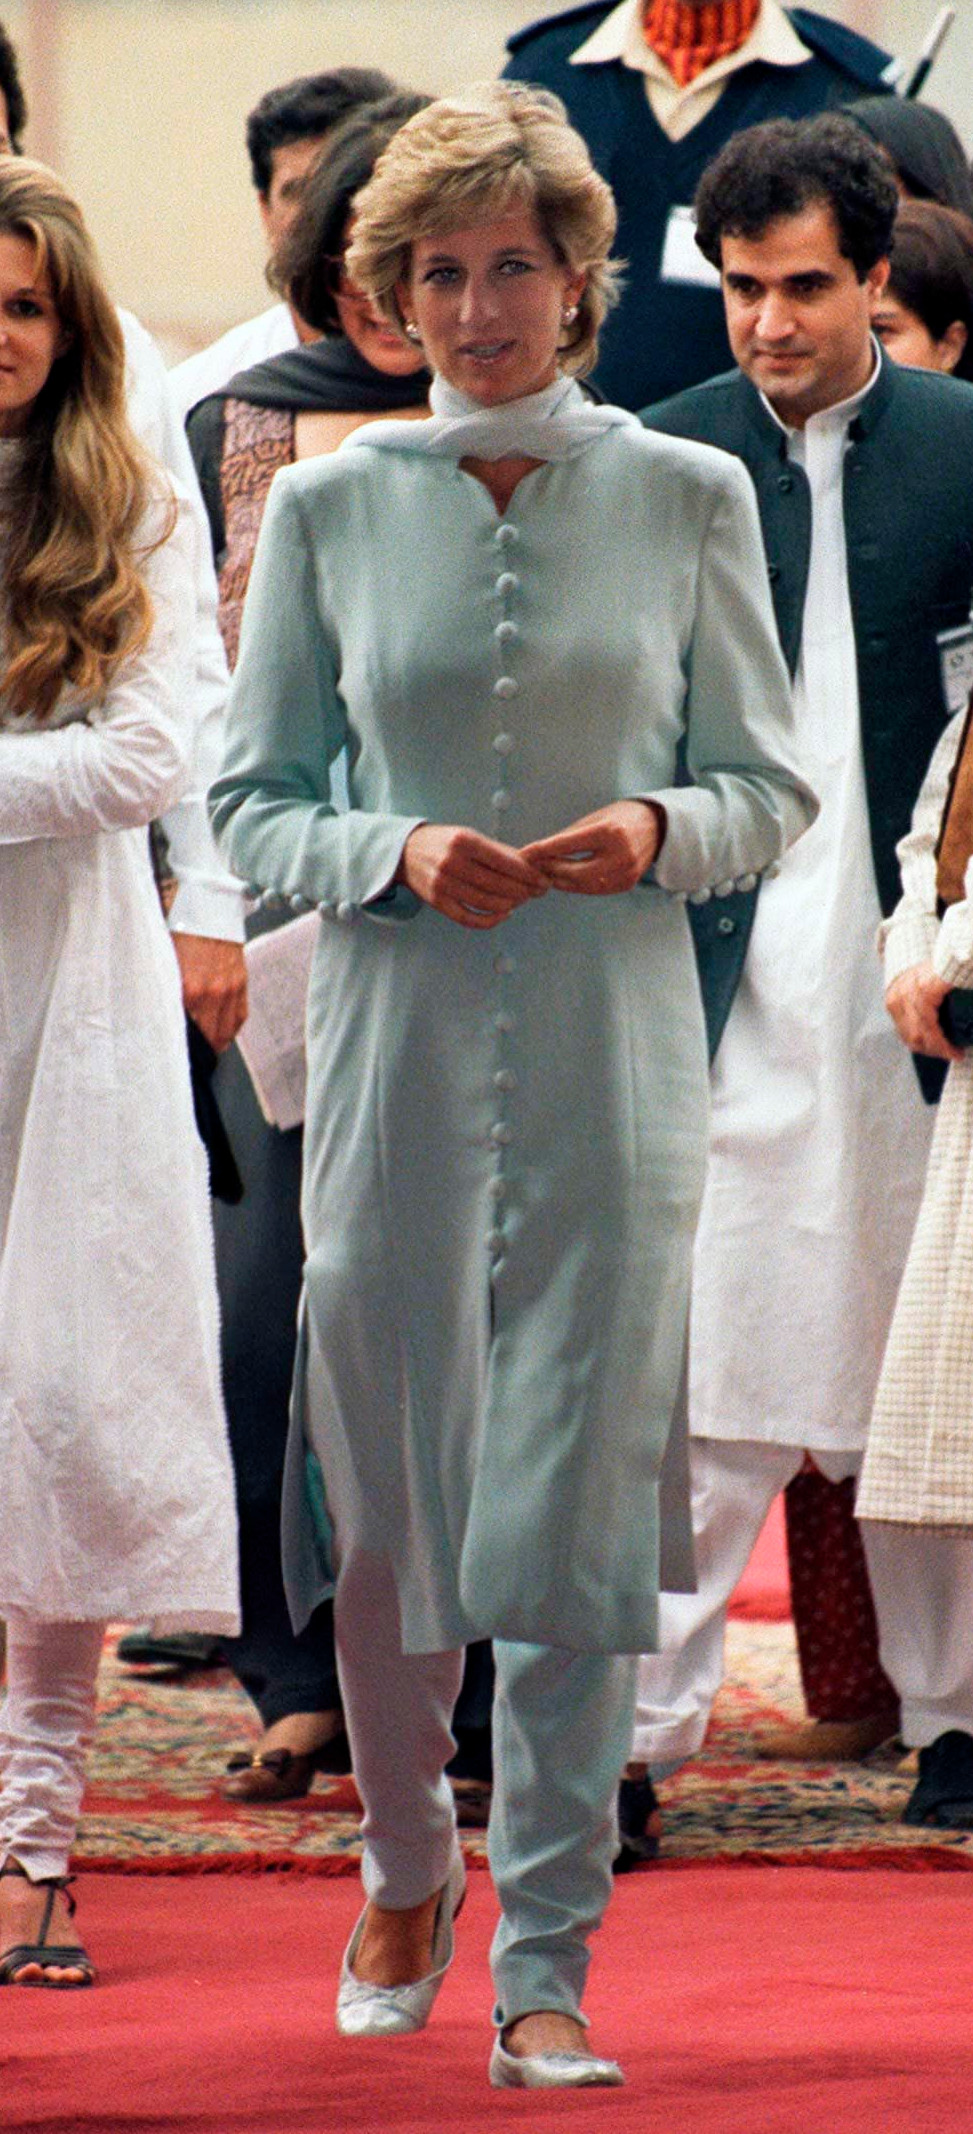 Kate's blue dress and trousers combination was reminiscent of the outfit Diana wore during one of her visits to Pakistan